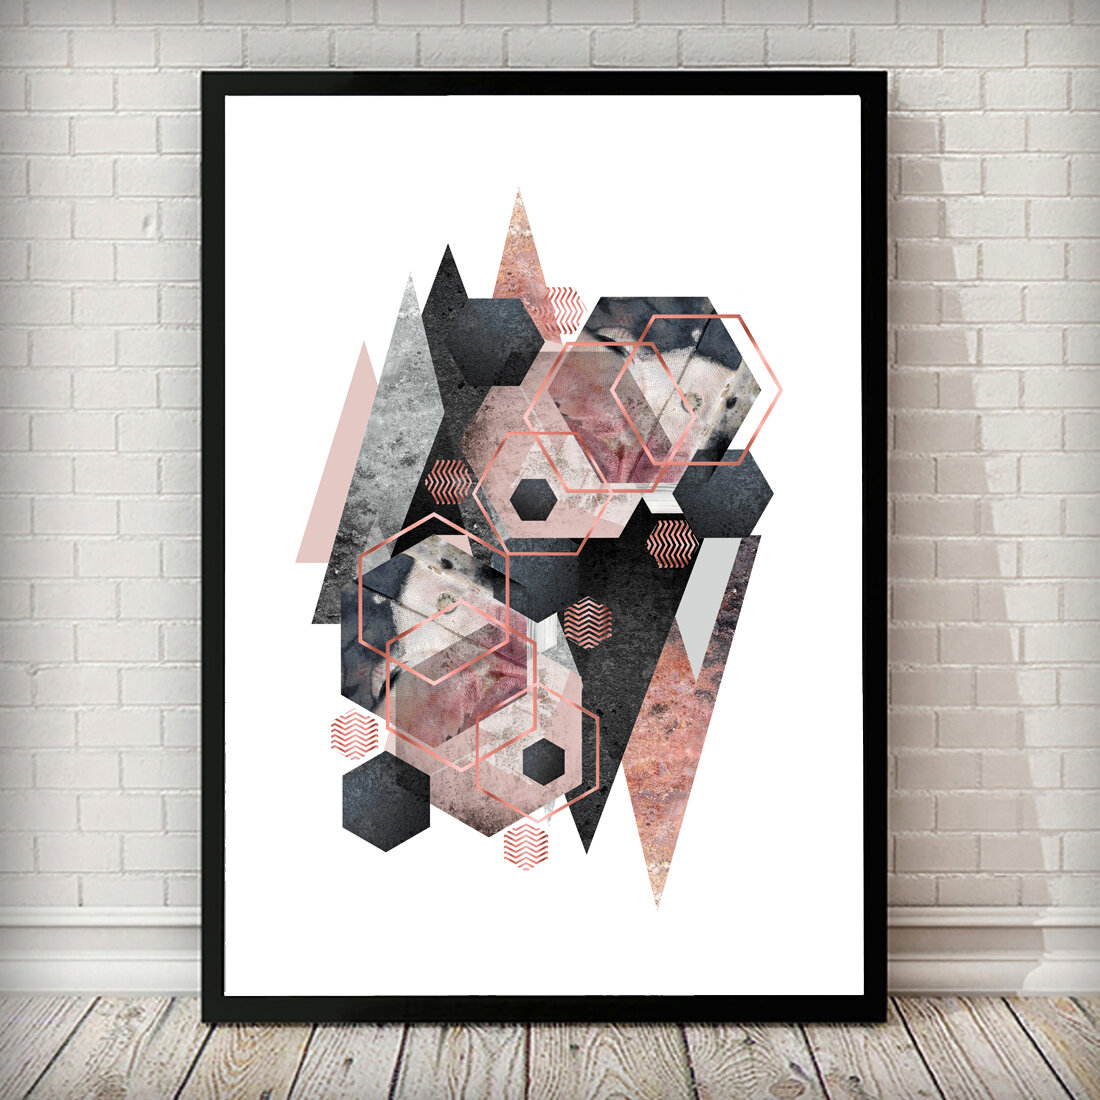 East Urban Home Geometric Overload Charcoal Grey Blush Pink Marble Abstract Framed Graphic Art Print